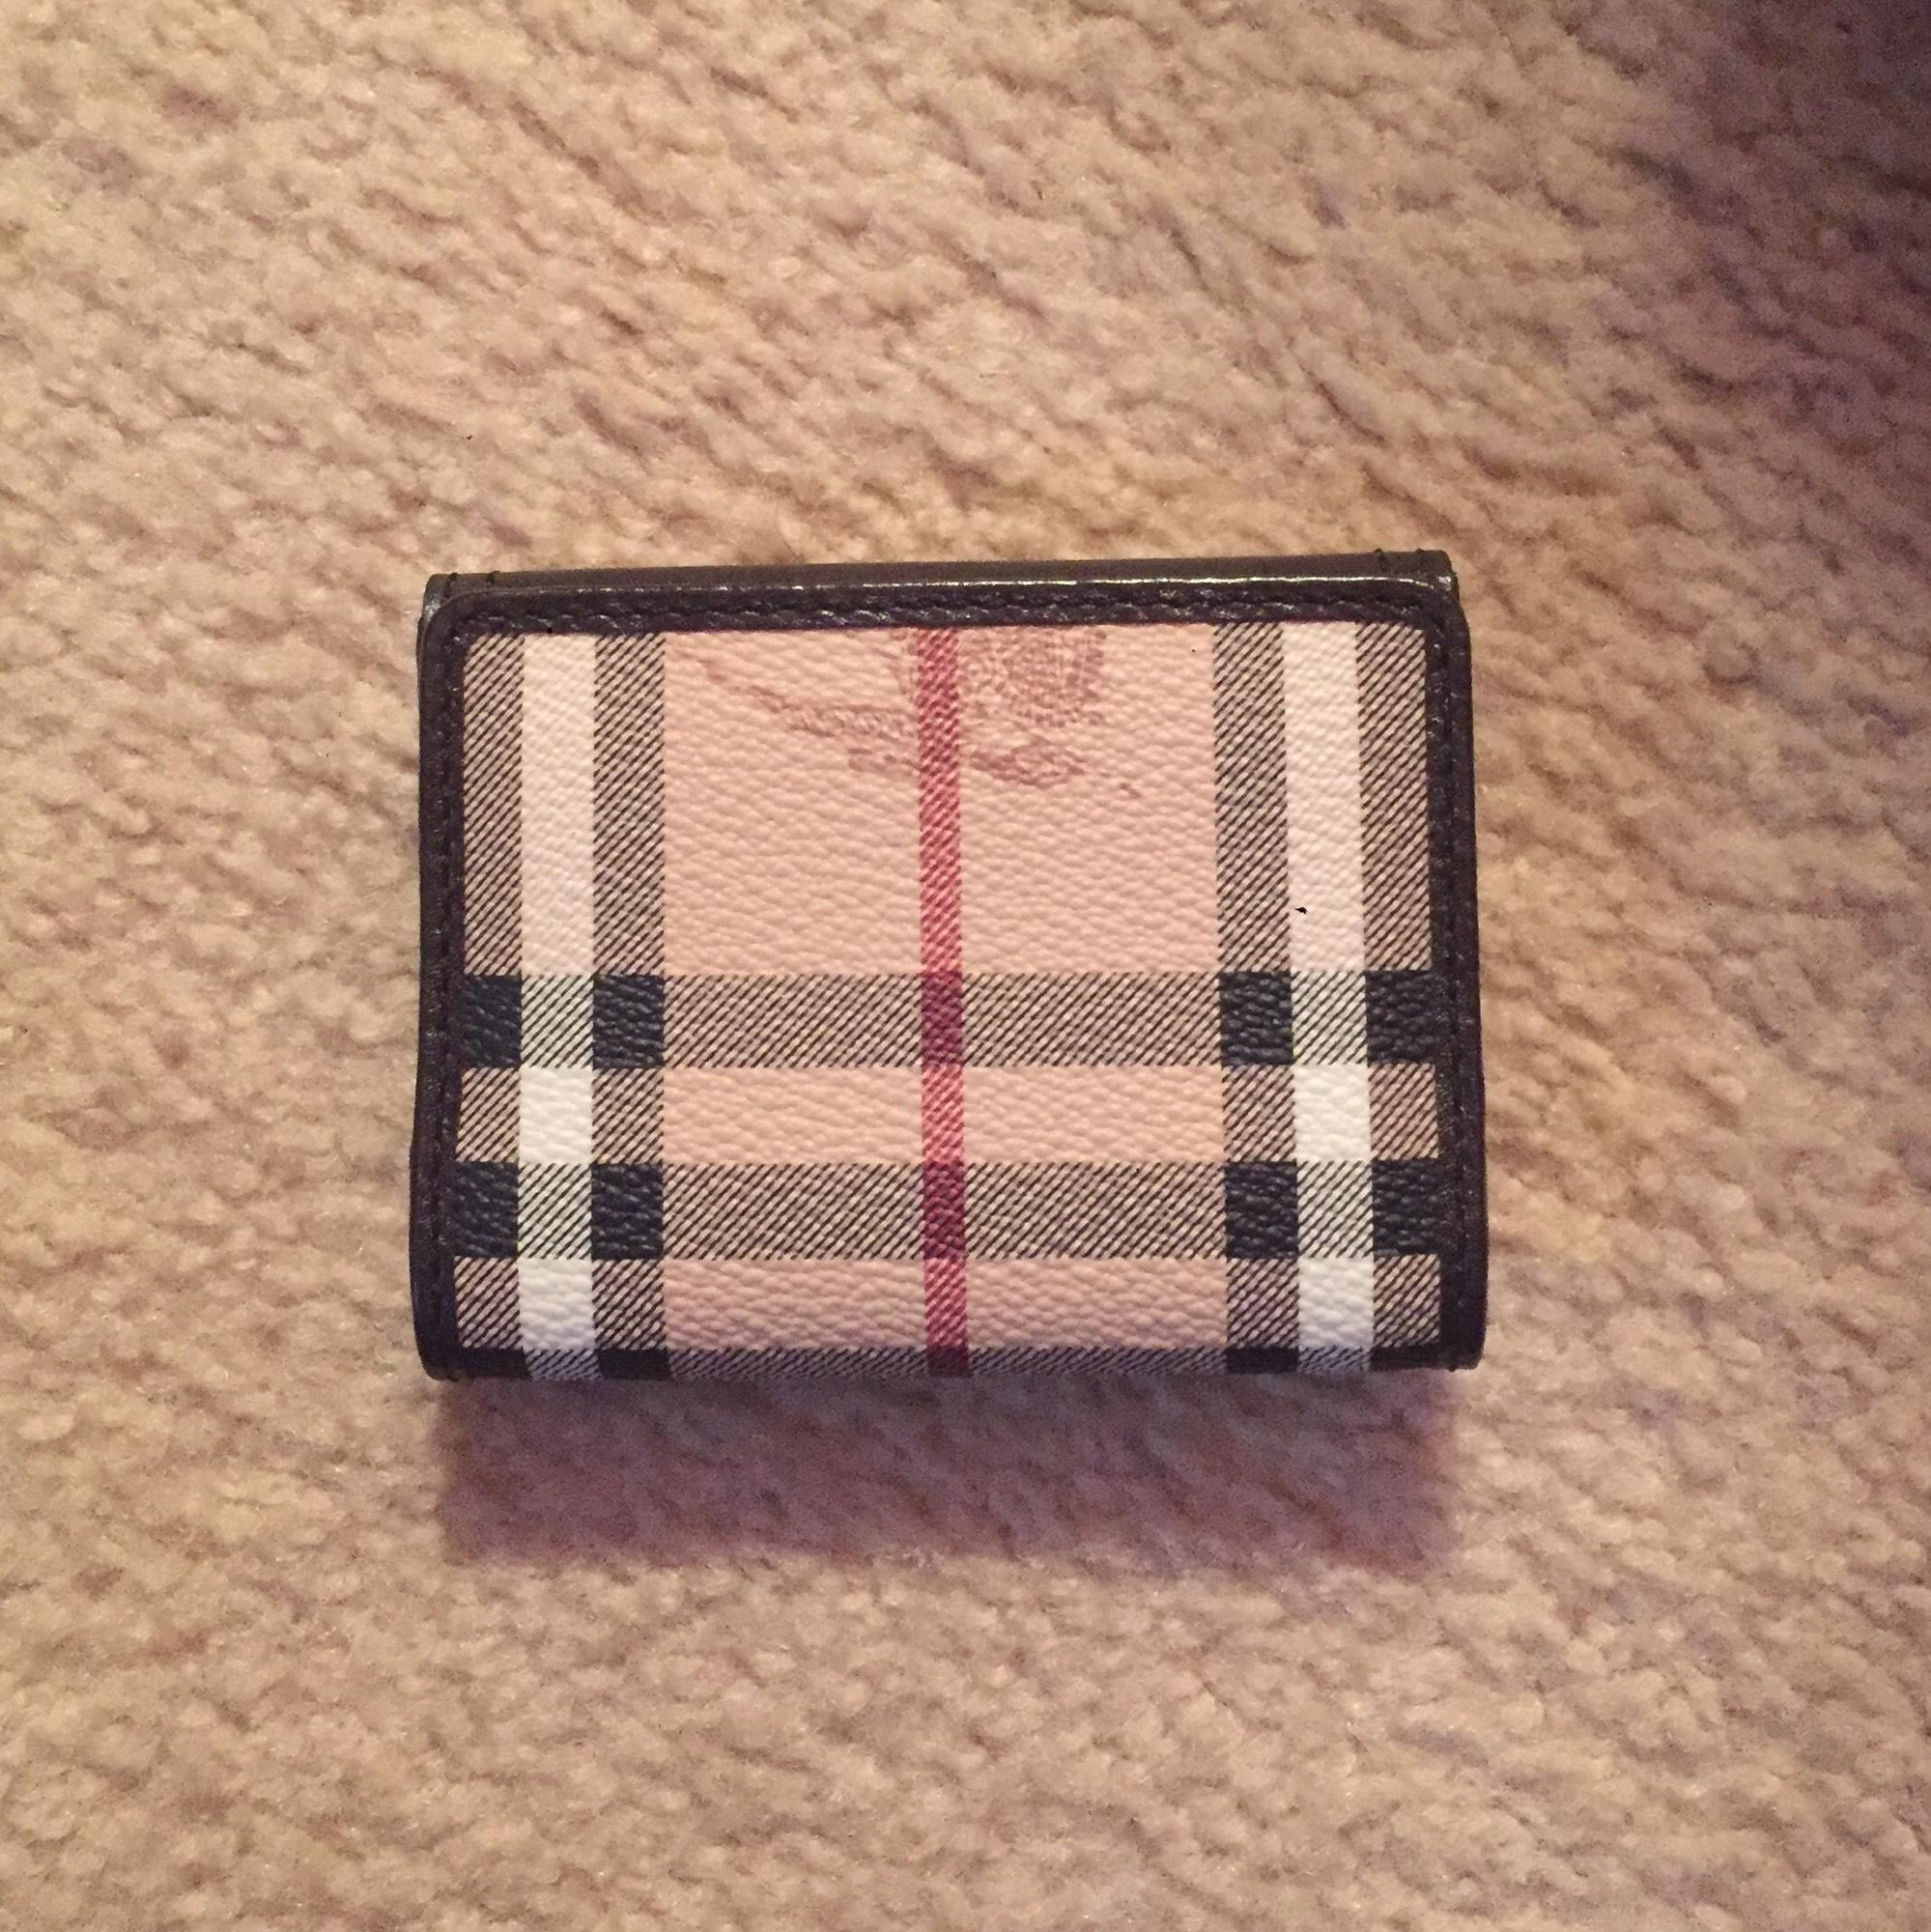 05522a41b56 Buy burberry plaid wallet  Free shipping for worldwide!OFF54% The ...